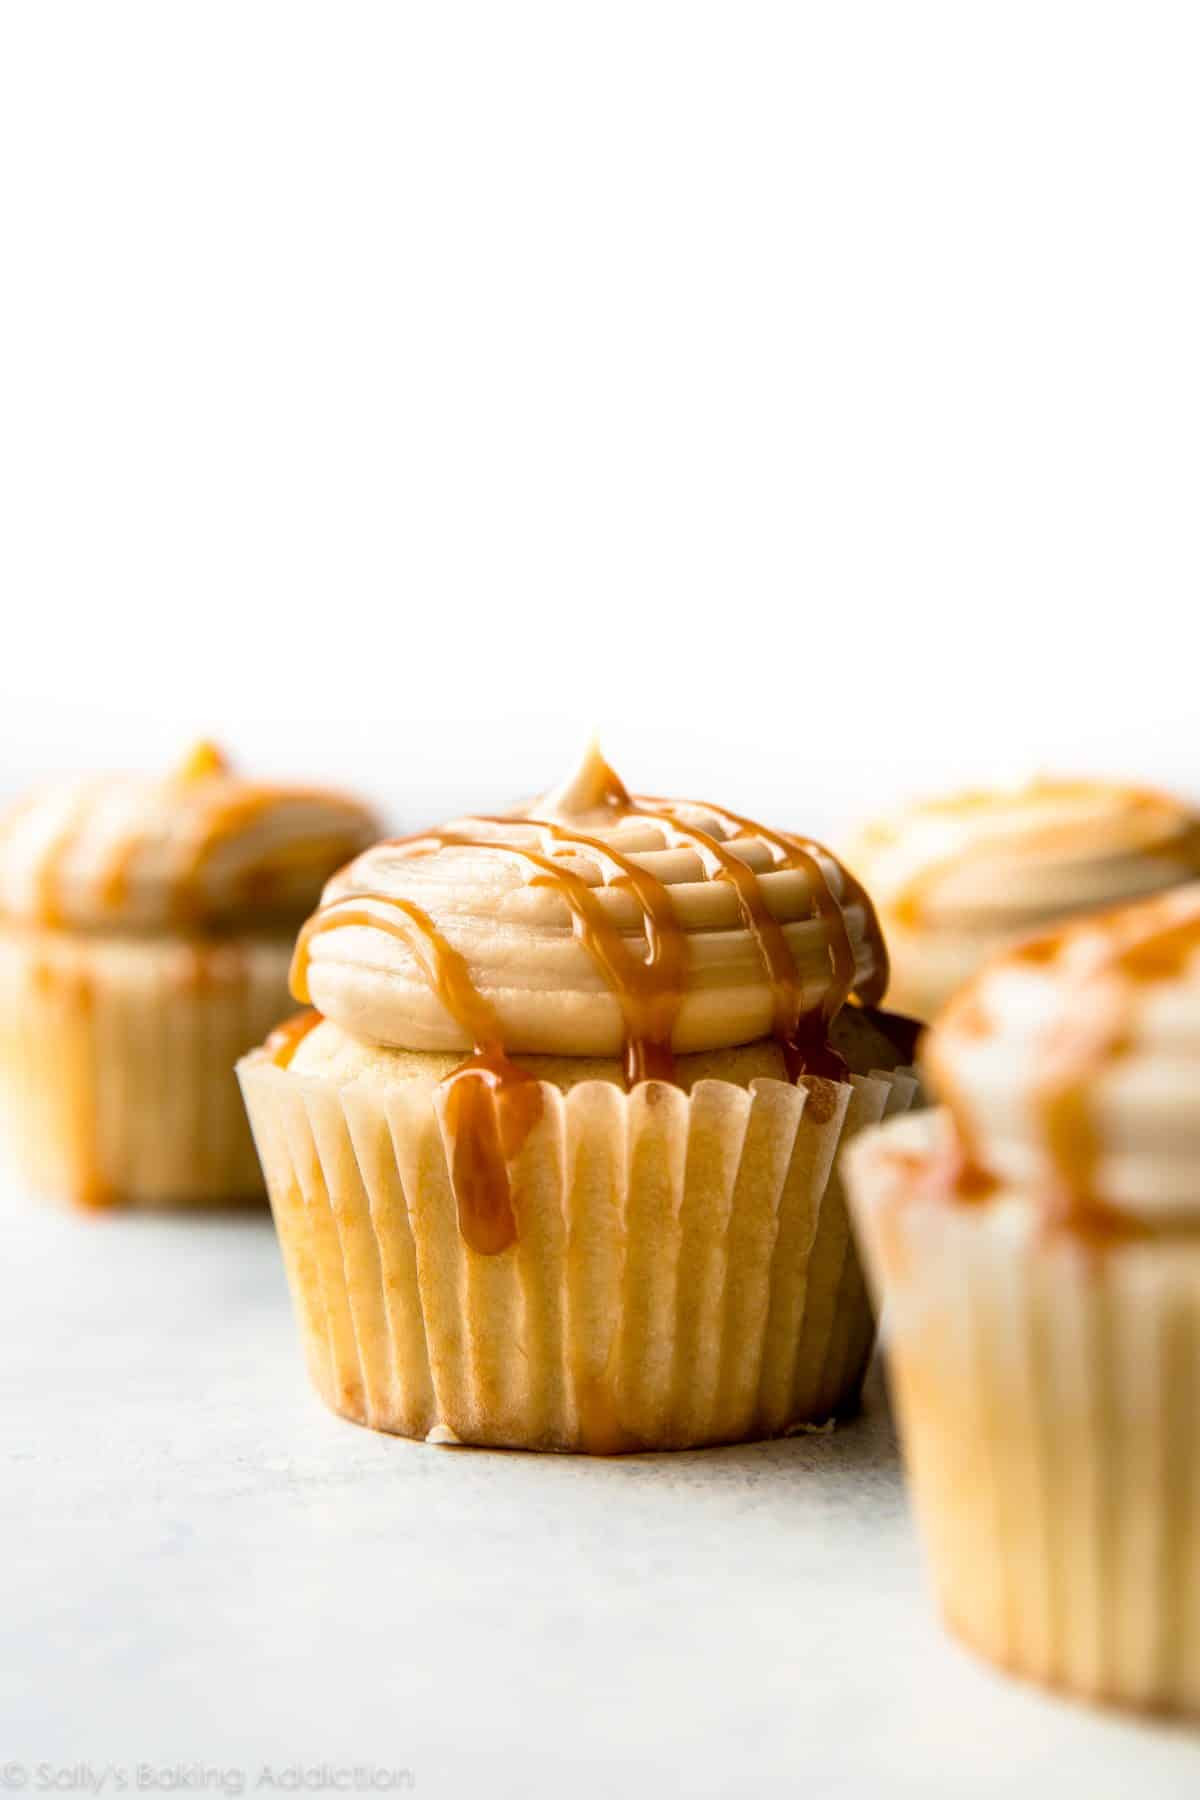 New & Improved Salted Caramel Frosting + Video - Sallys ...